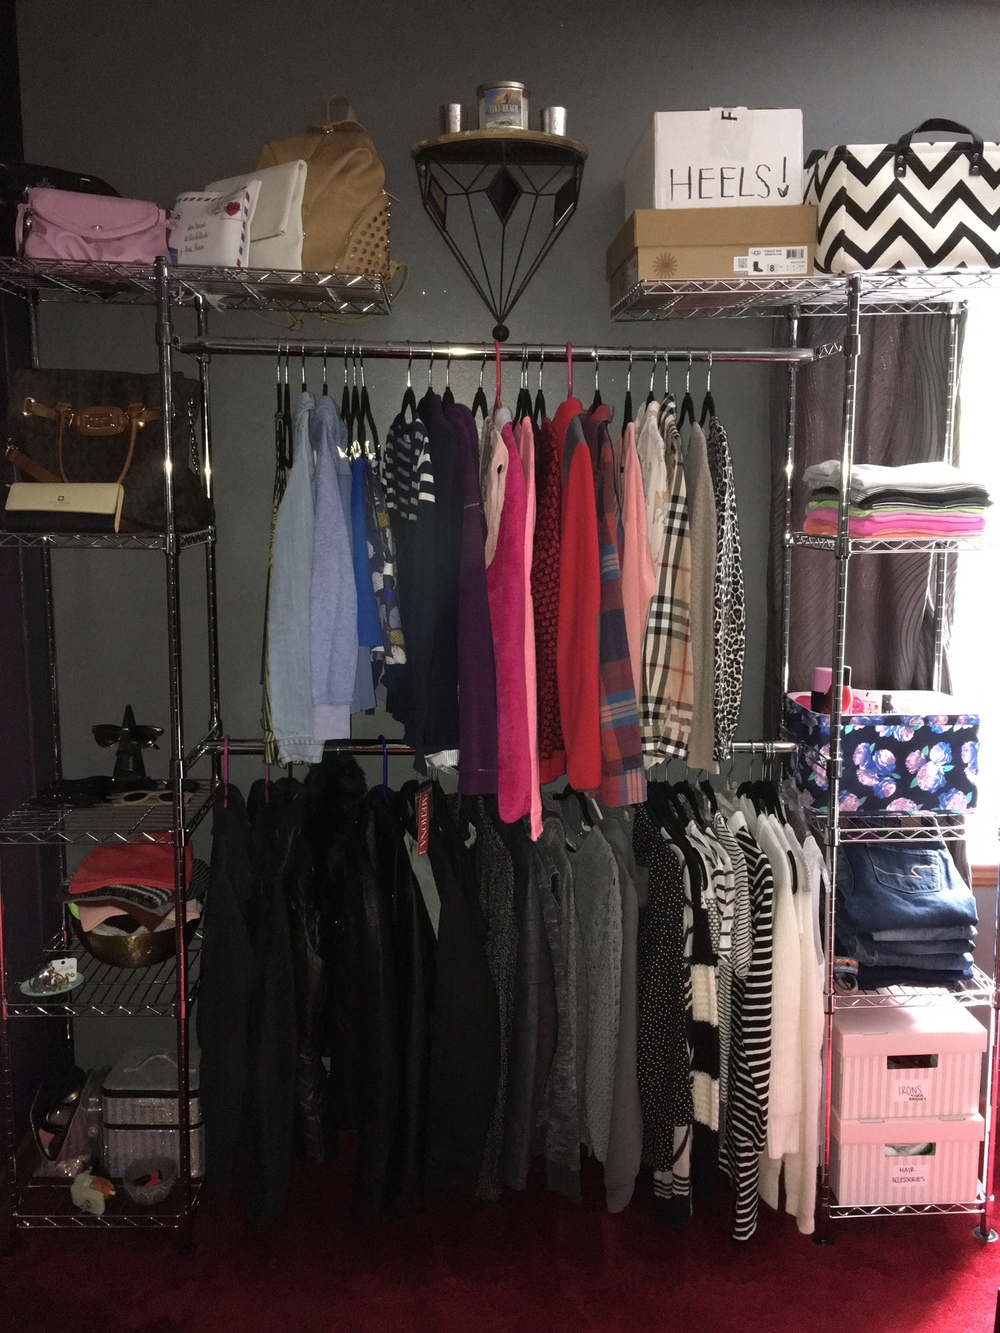 I bought this clothes rack at the end of last year because it was starting to get harder and harder for me to fit all of my clothes into my tiny closet and even though I currently have two dressers, each drawer is occupied with other types of clothing. I also can not stand my clothes being wrinkly so this is a great way to not only give character to my room, but to also keep my clothes sorted out and wrinkle-free.